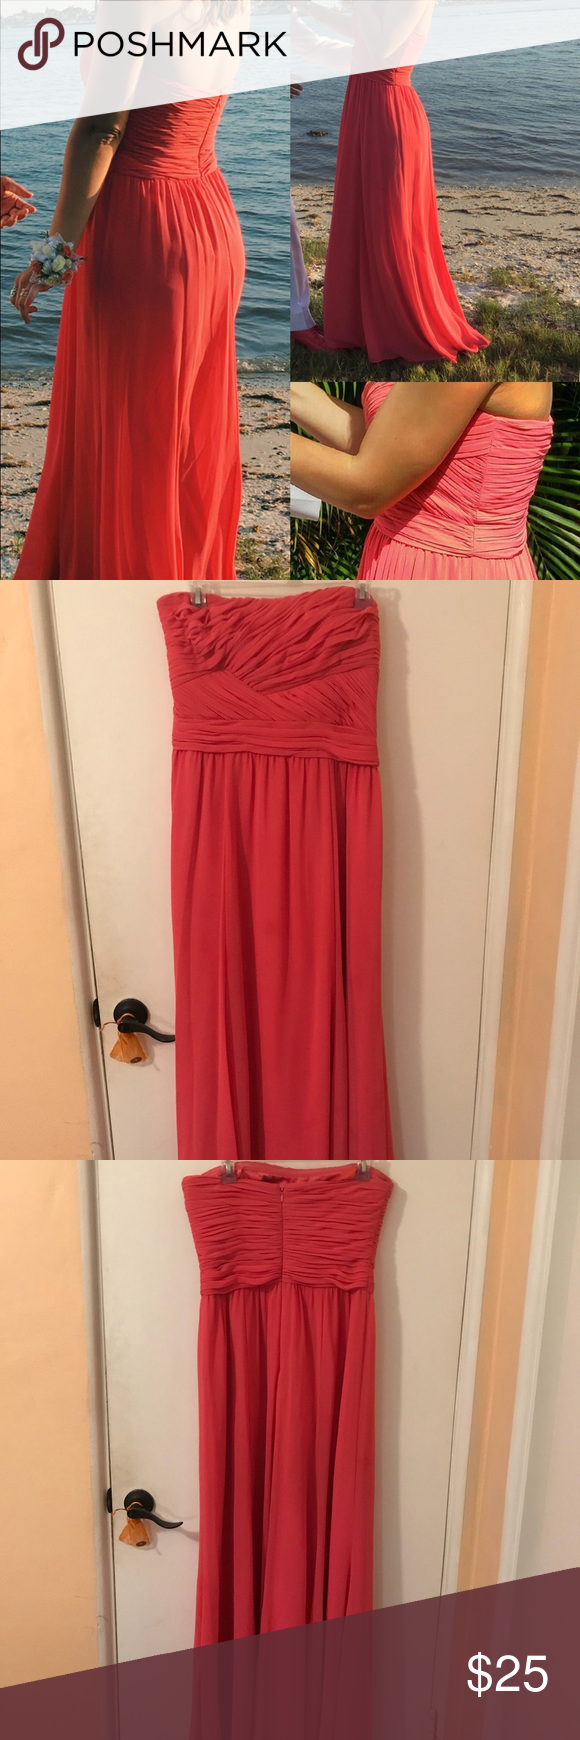 Prom dress size my posh picks pinterest coral dress prom